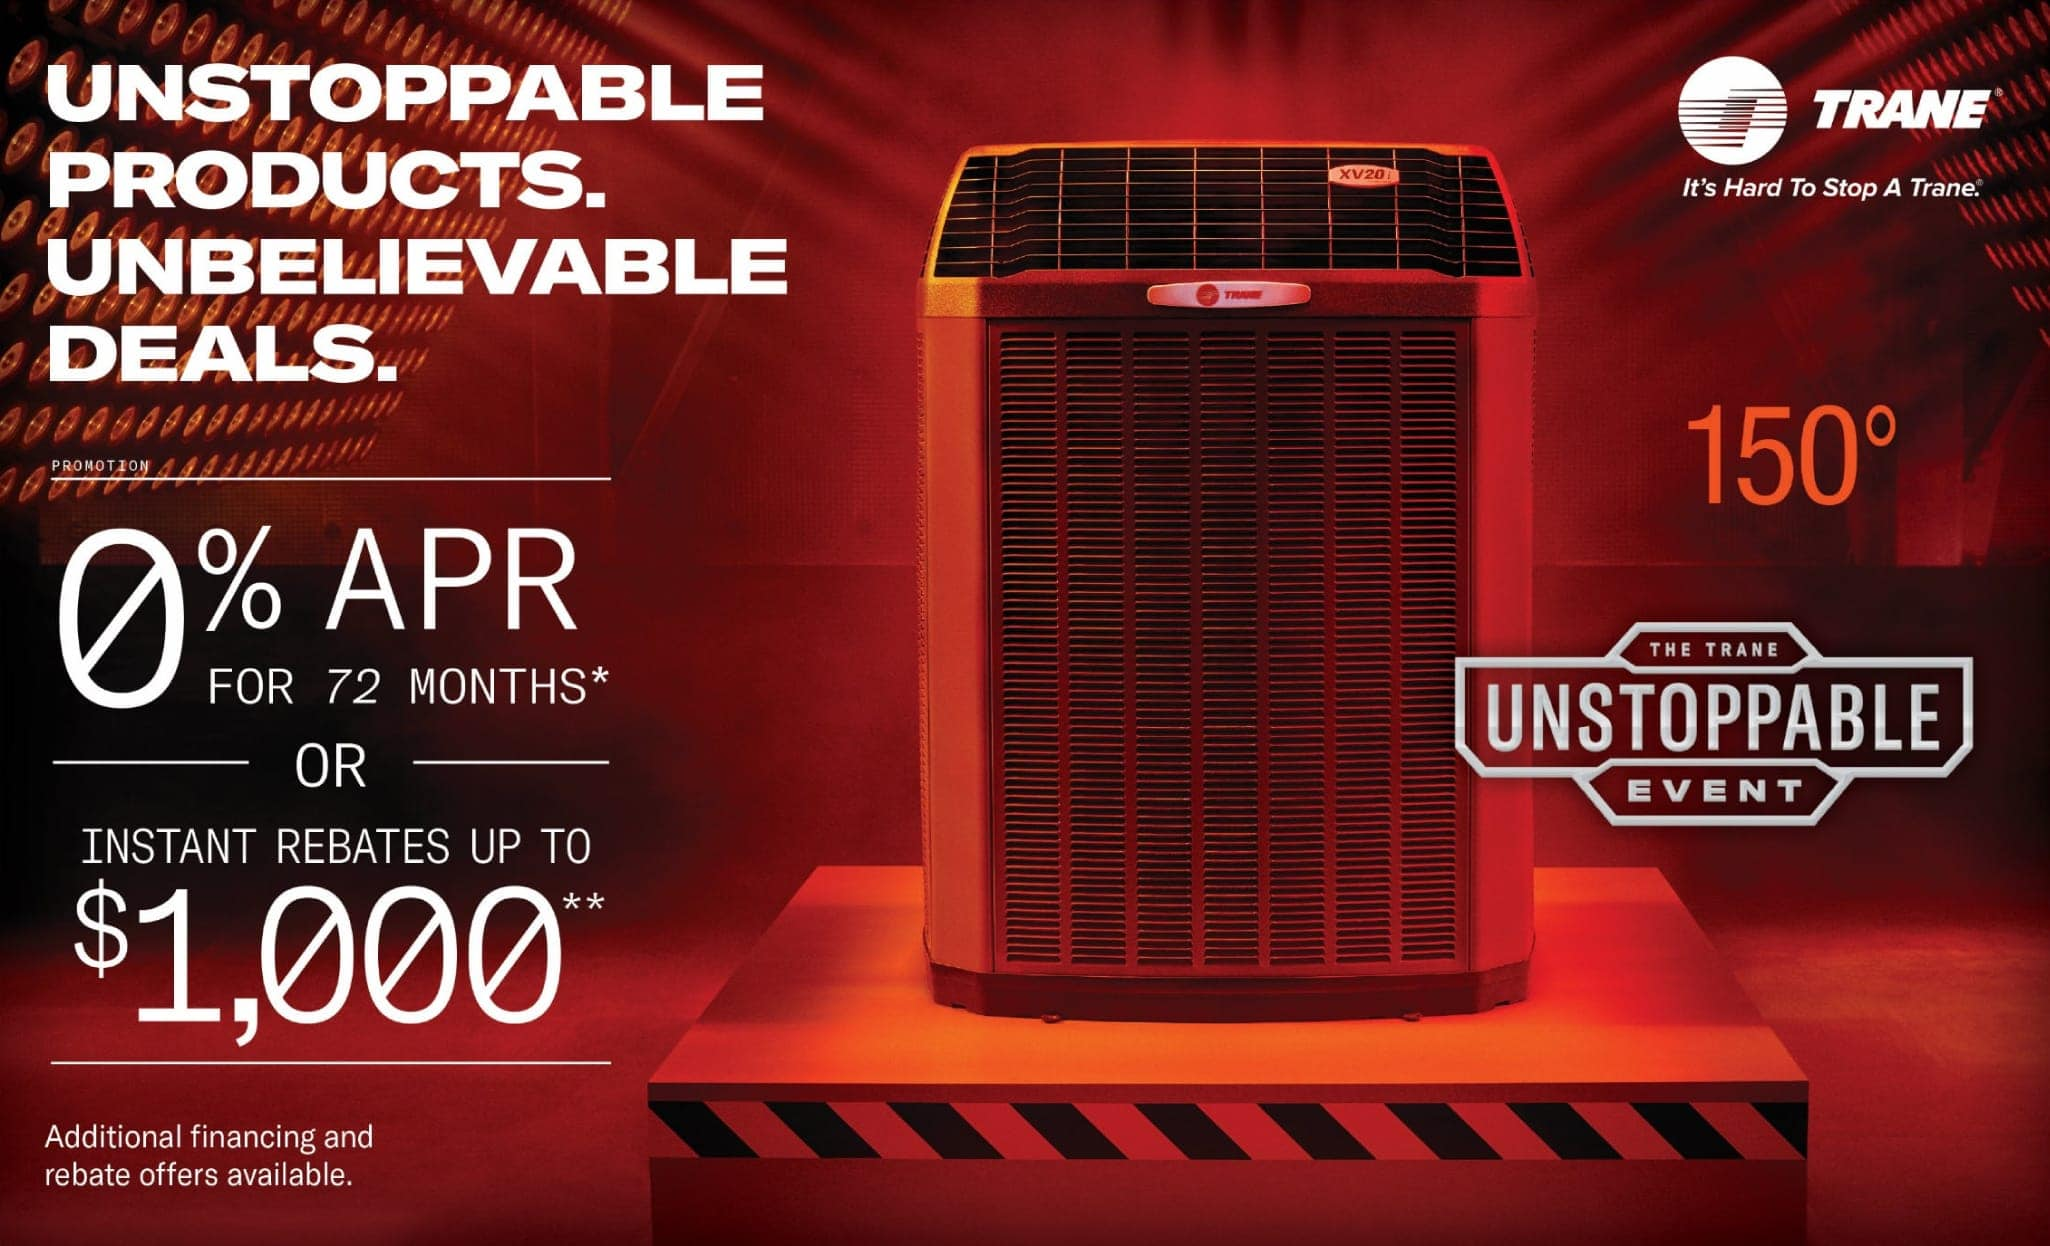 The Trane Unstoppable Event.